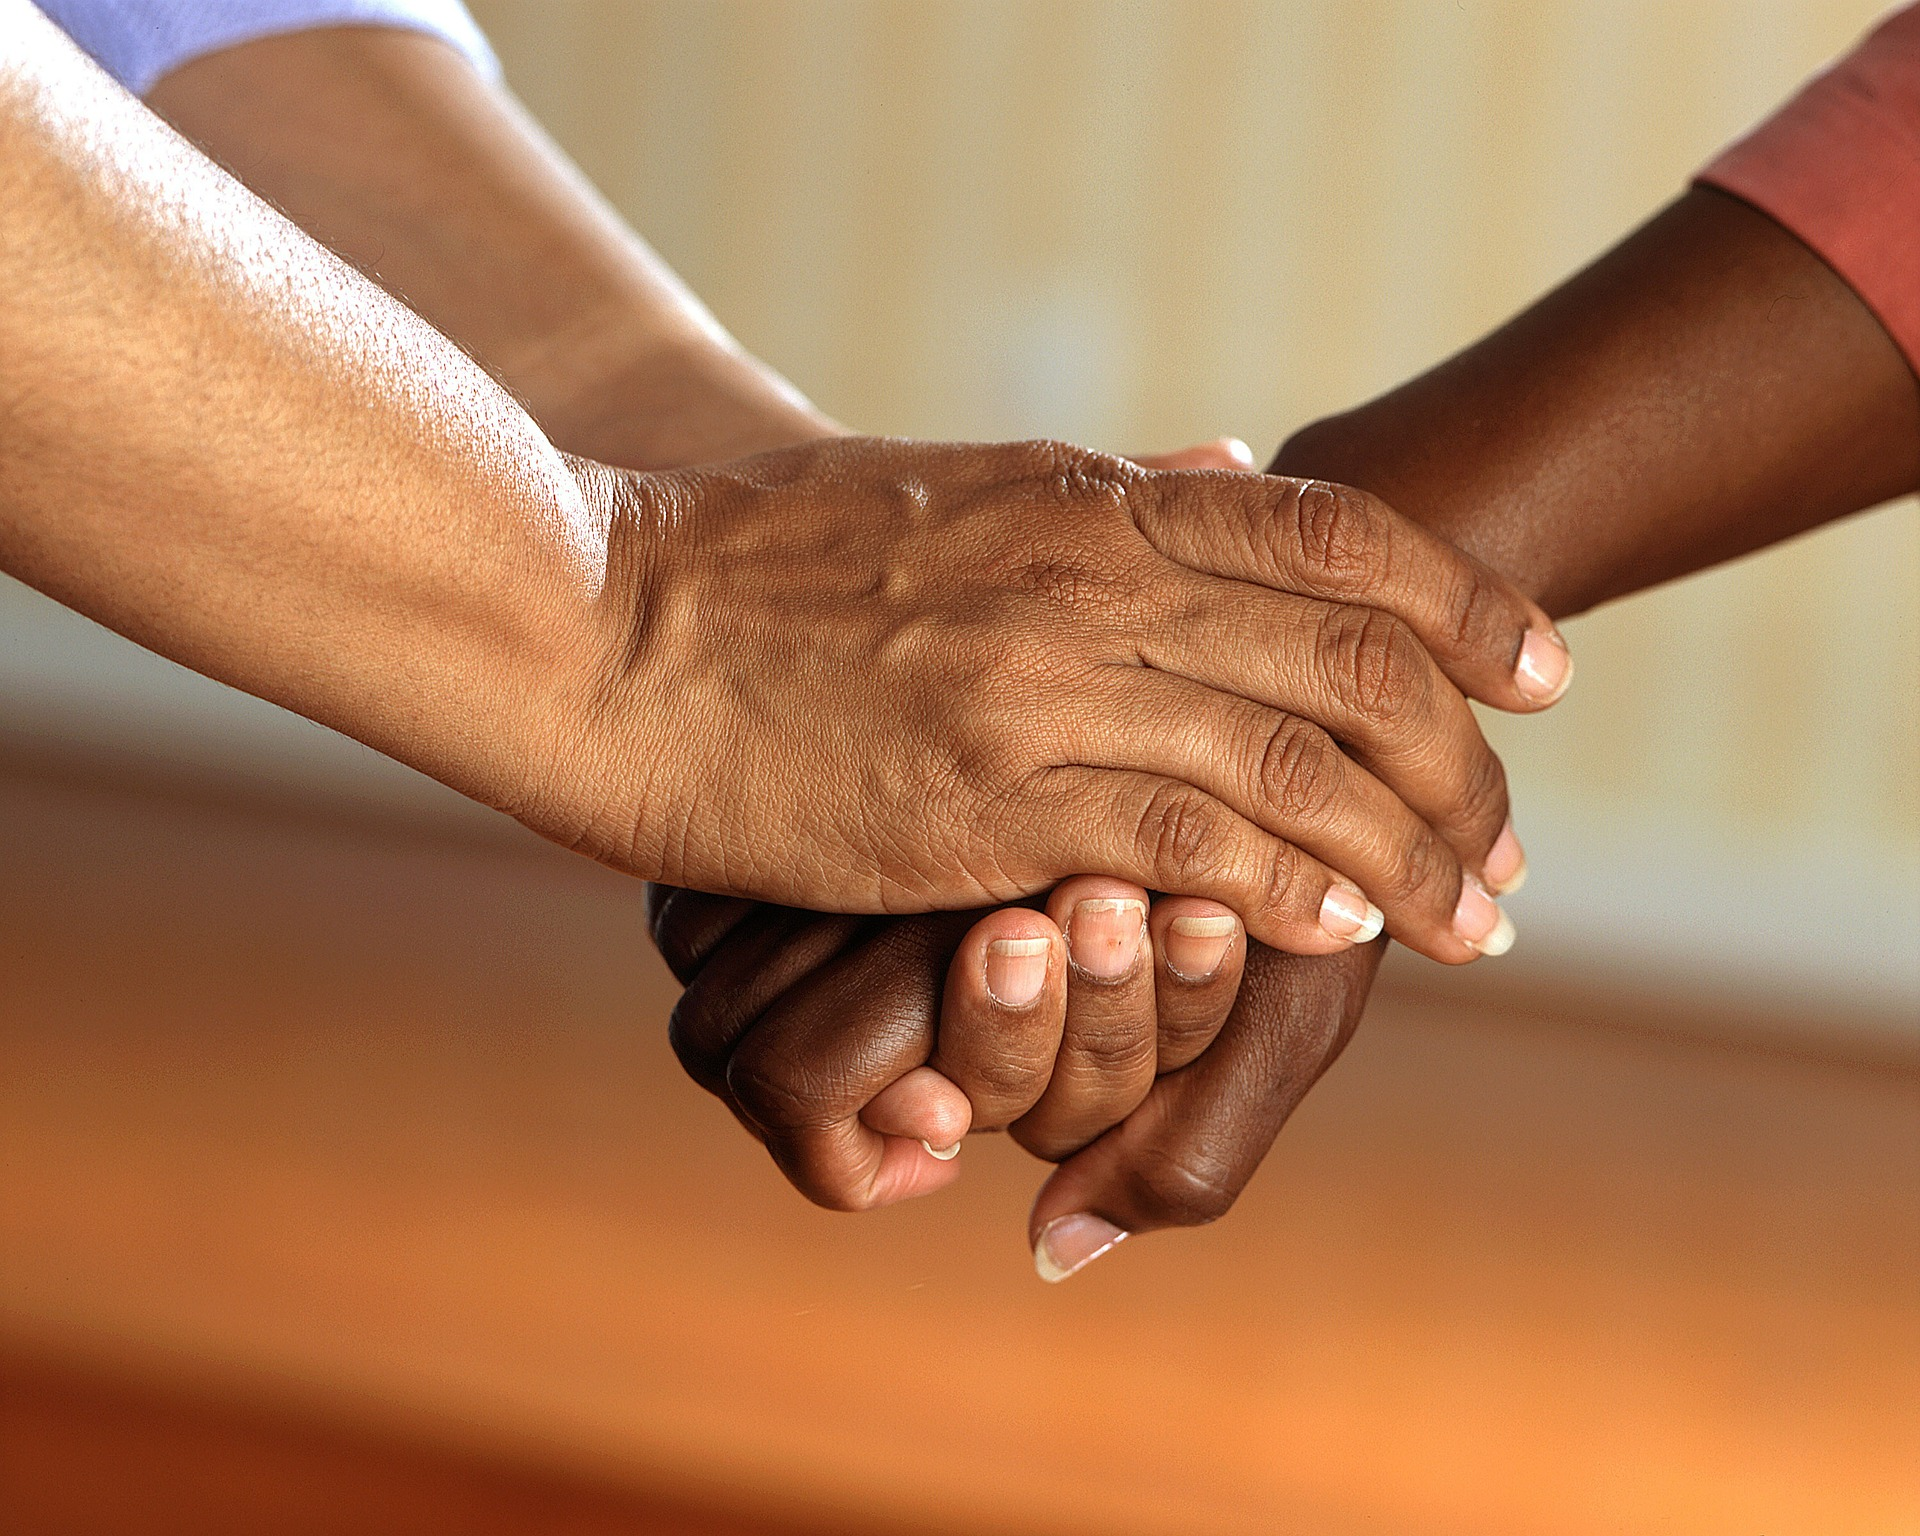 clasped-hands-541849_1920-2